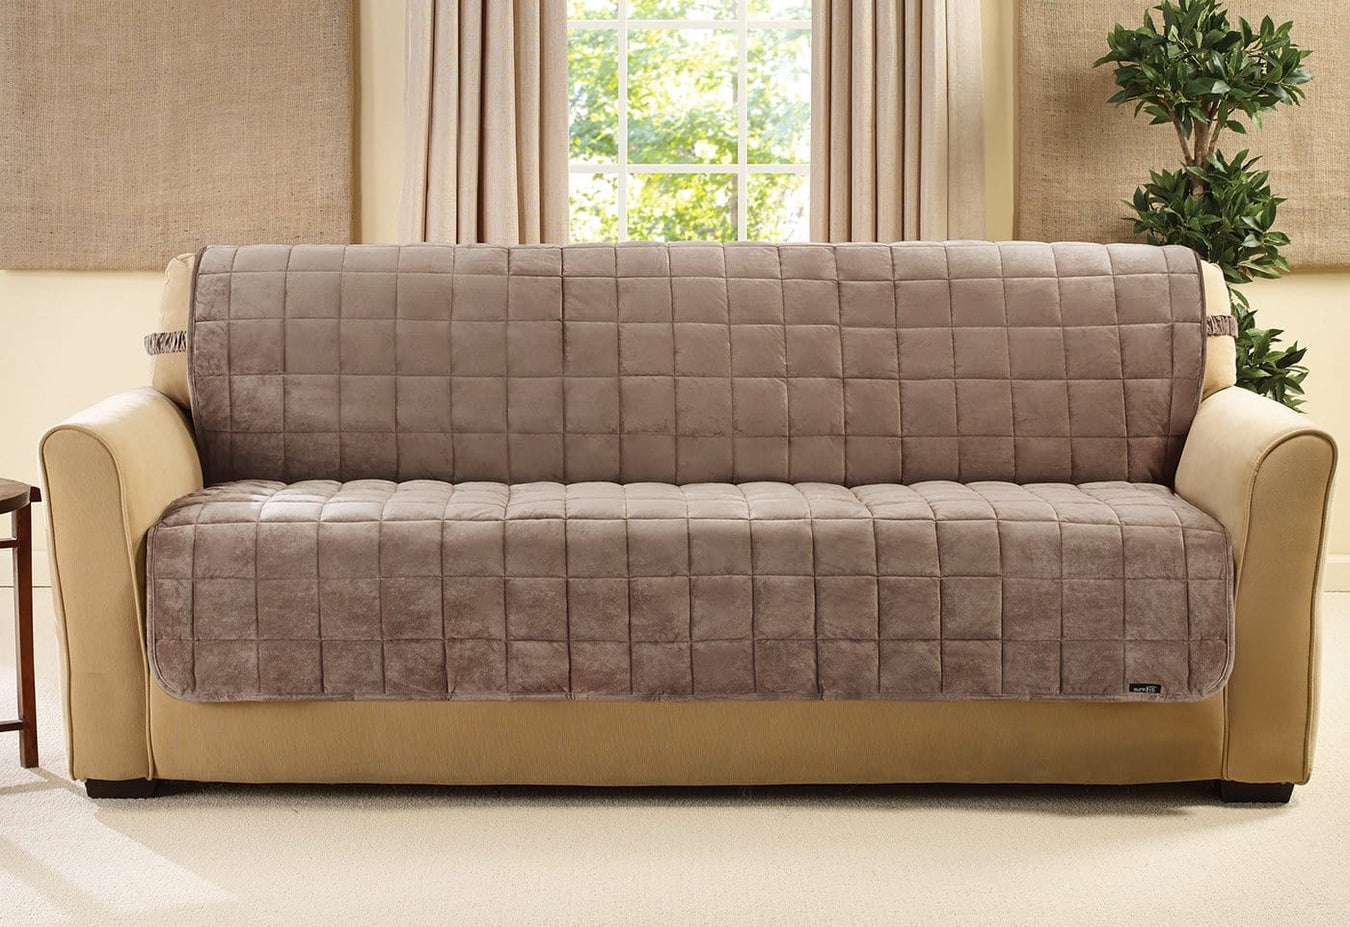 Fabulous Deluxe Comfort Armless Sofa Furniture Cover Sofa Covers Download Free Architecture Designs Scobabritishbridgeorg